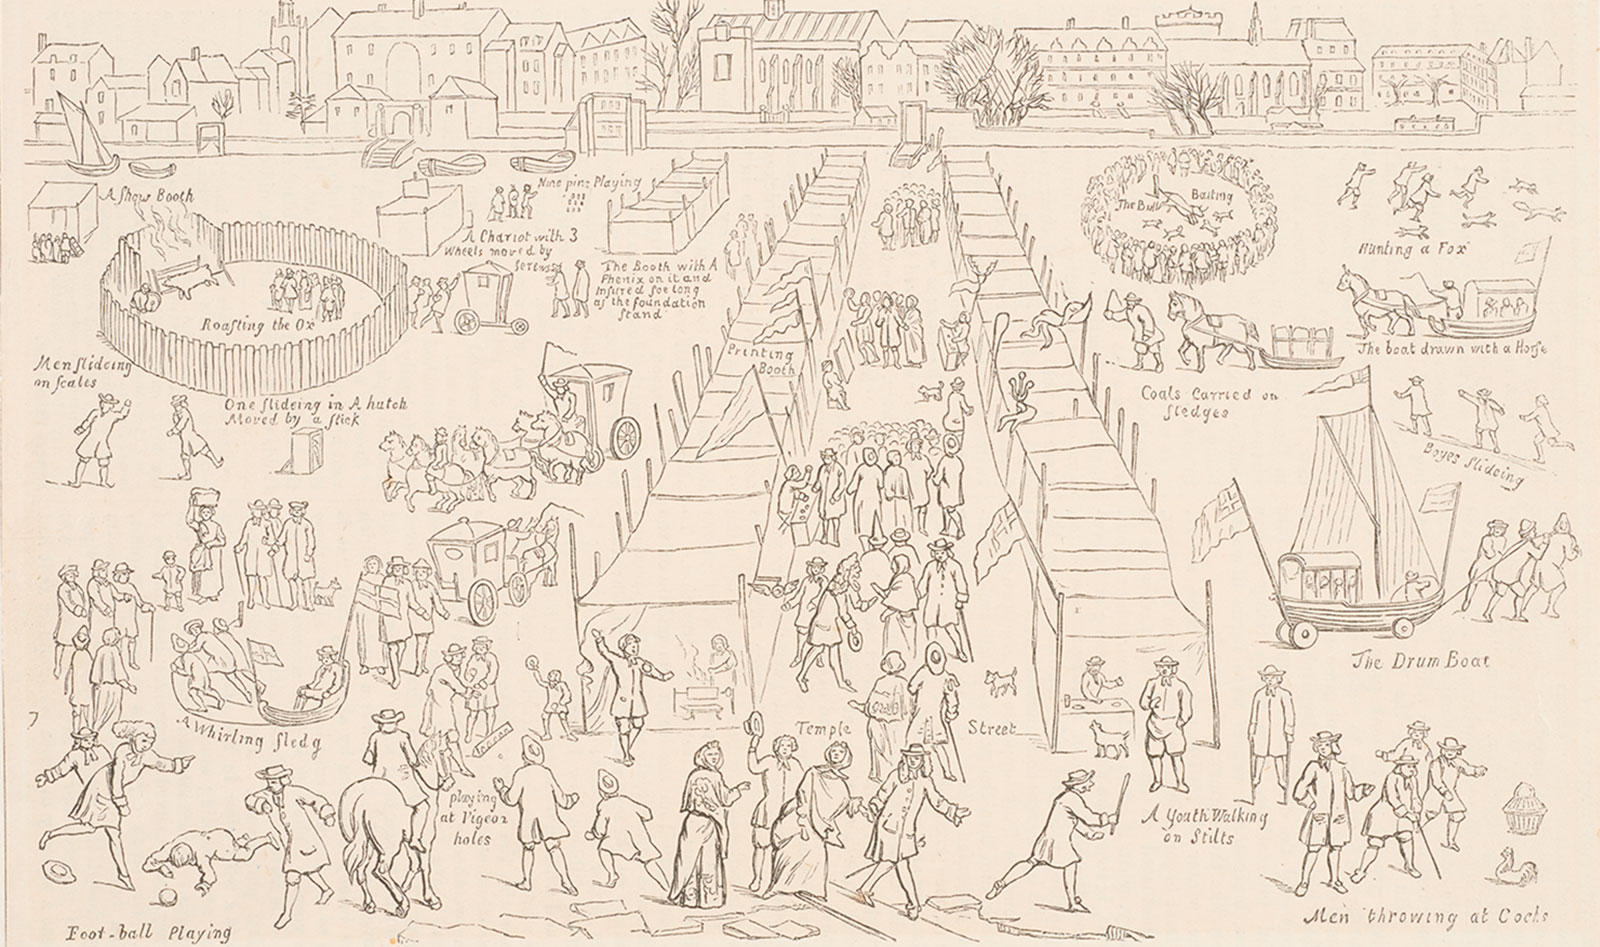 View of a frost fair on the Thames in 1684 showing 'foot-ball' being played in the bottom left hand corner. This etching was probably made in the nineteenth century but is based on an engraving of 1685